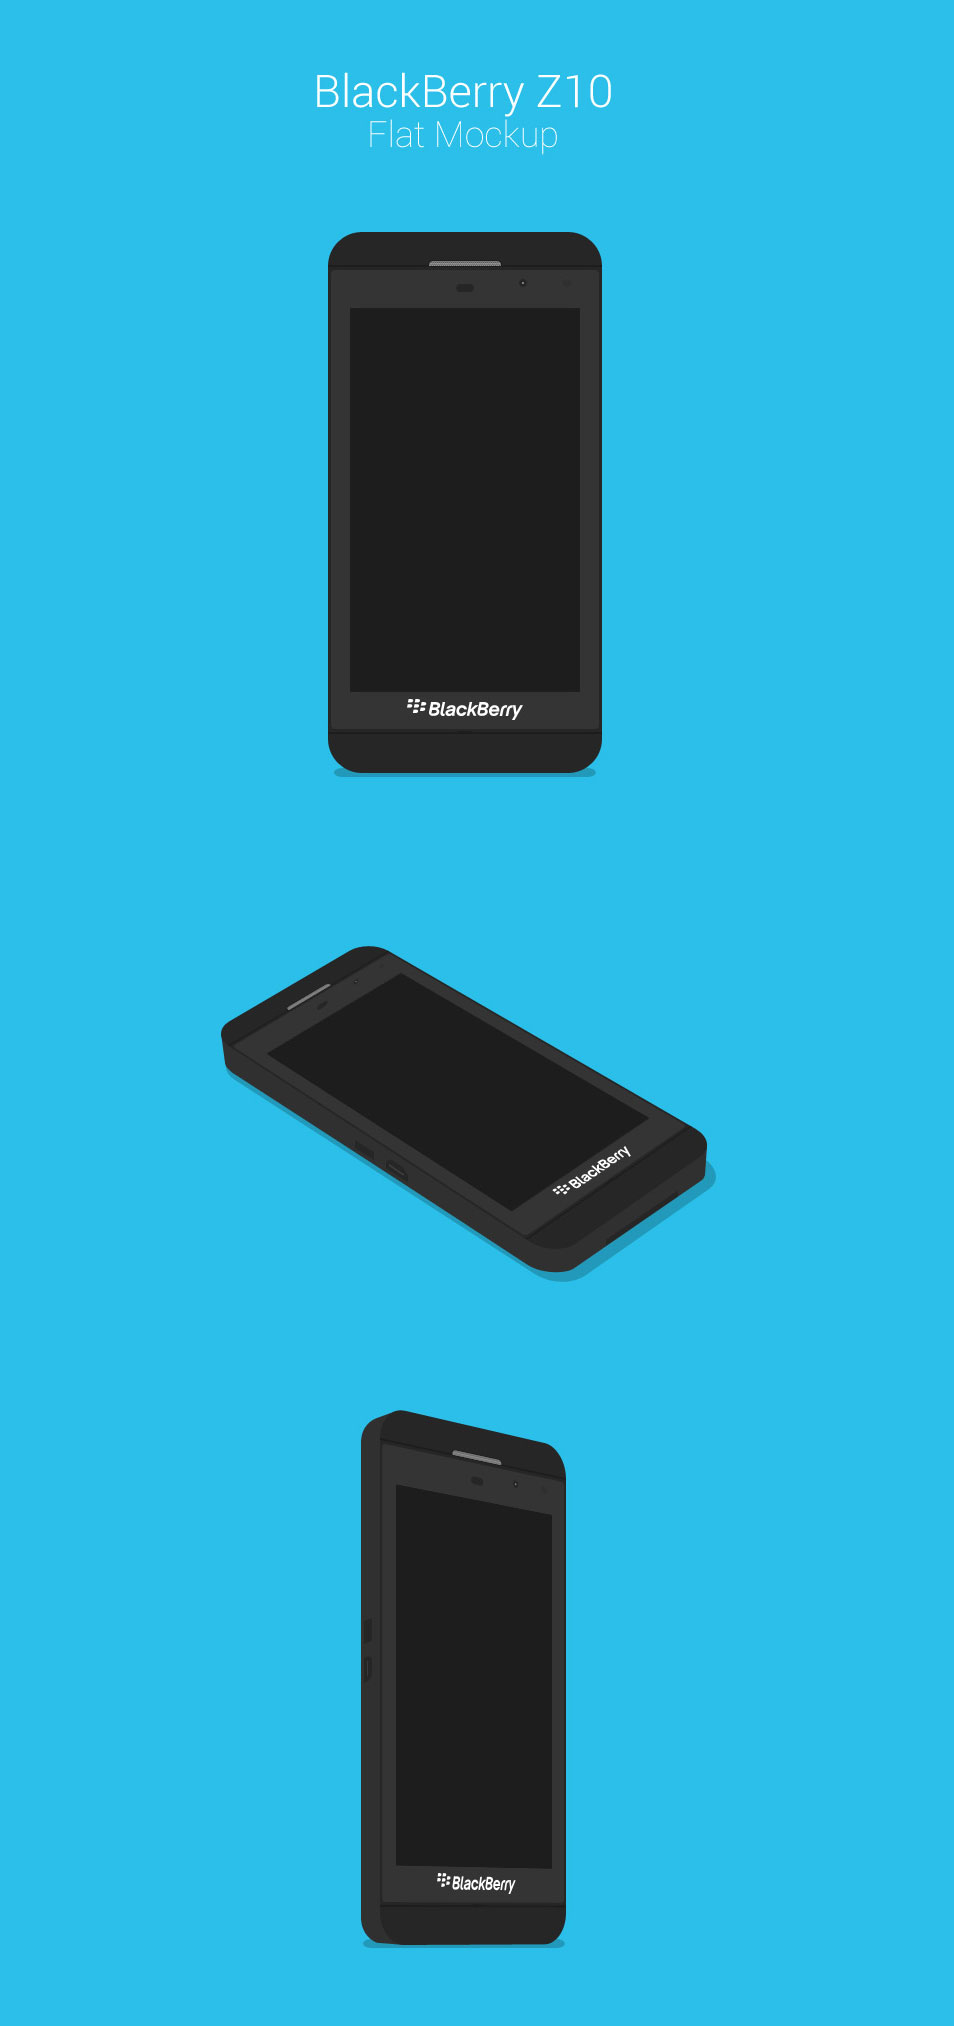 BlackBerry-Z10-Flat-MockUp